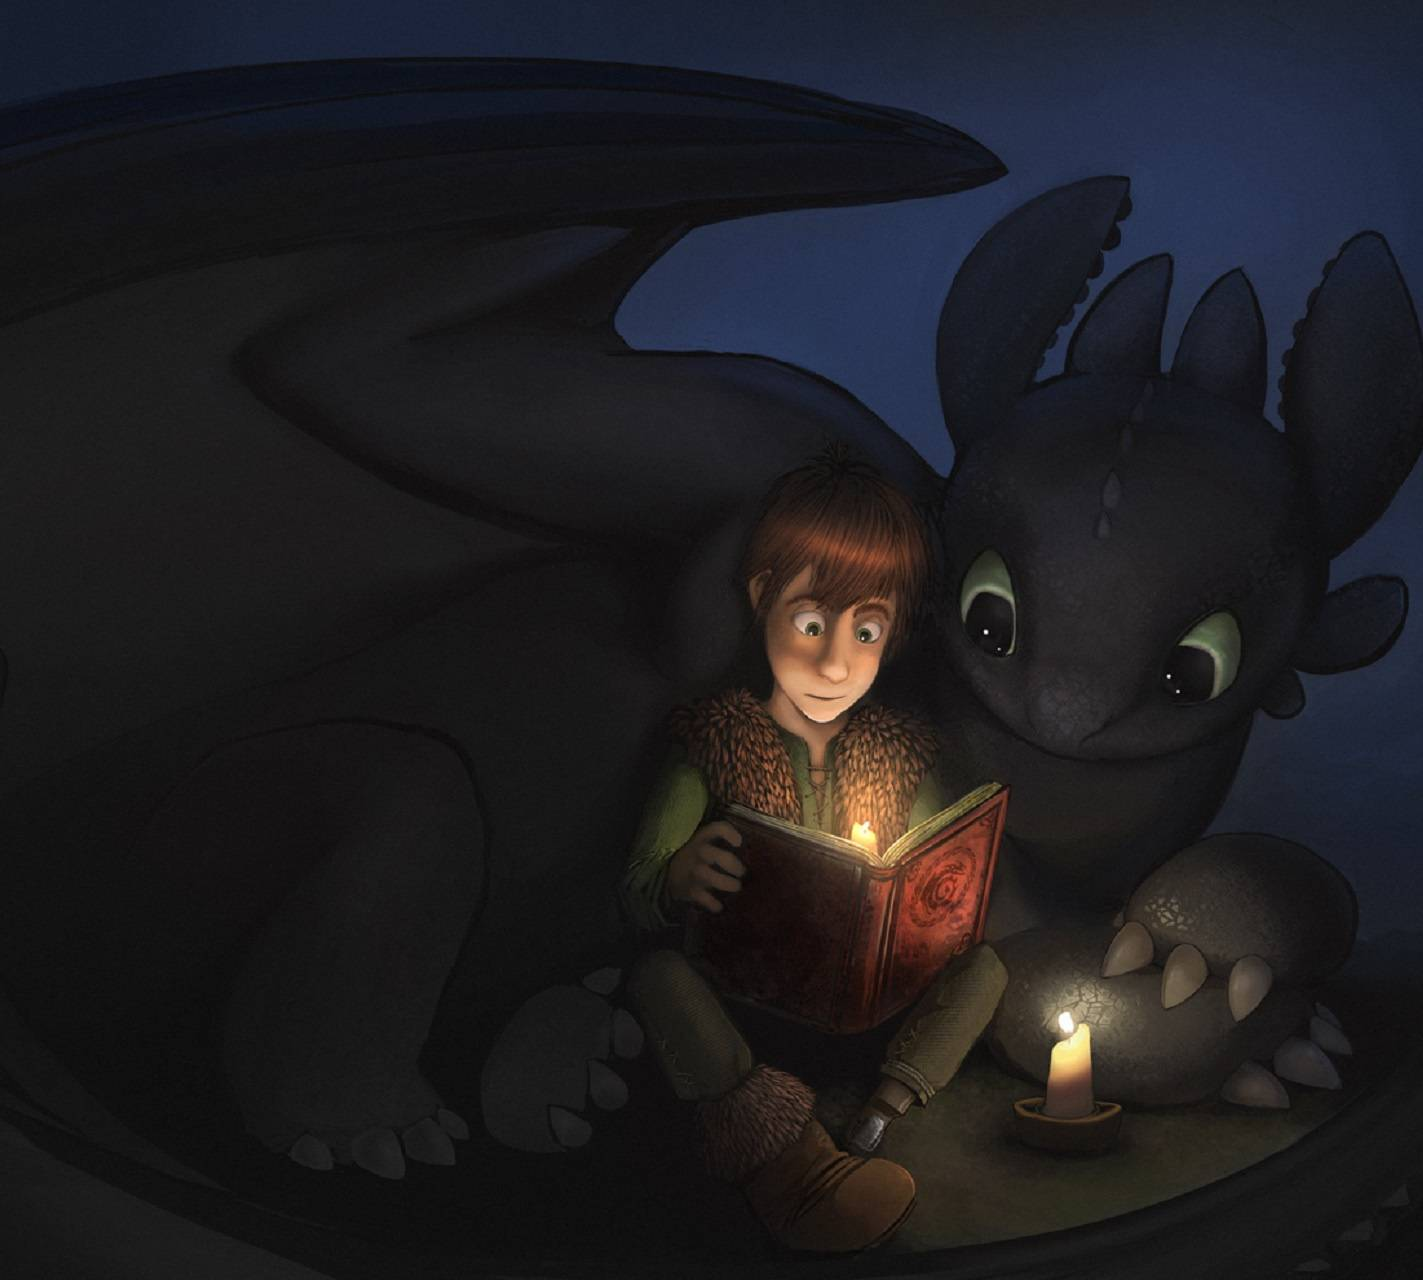 Toothless Wallpaper: Toothless Wallpaper By Fish_fingers